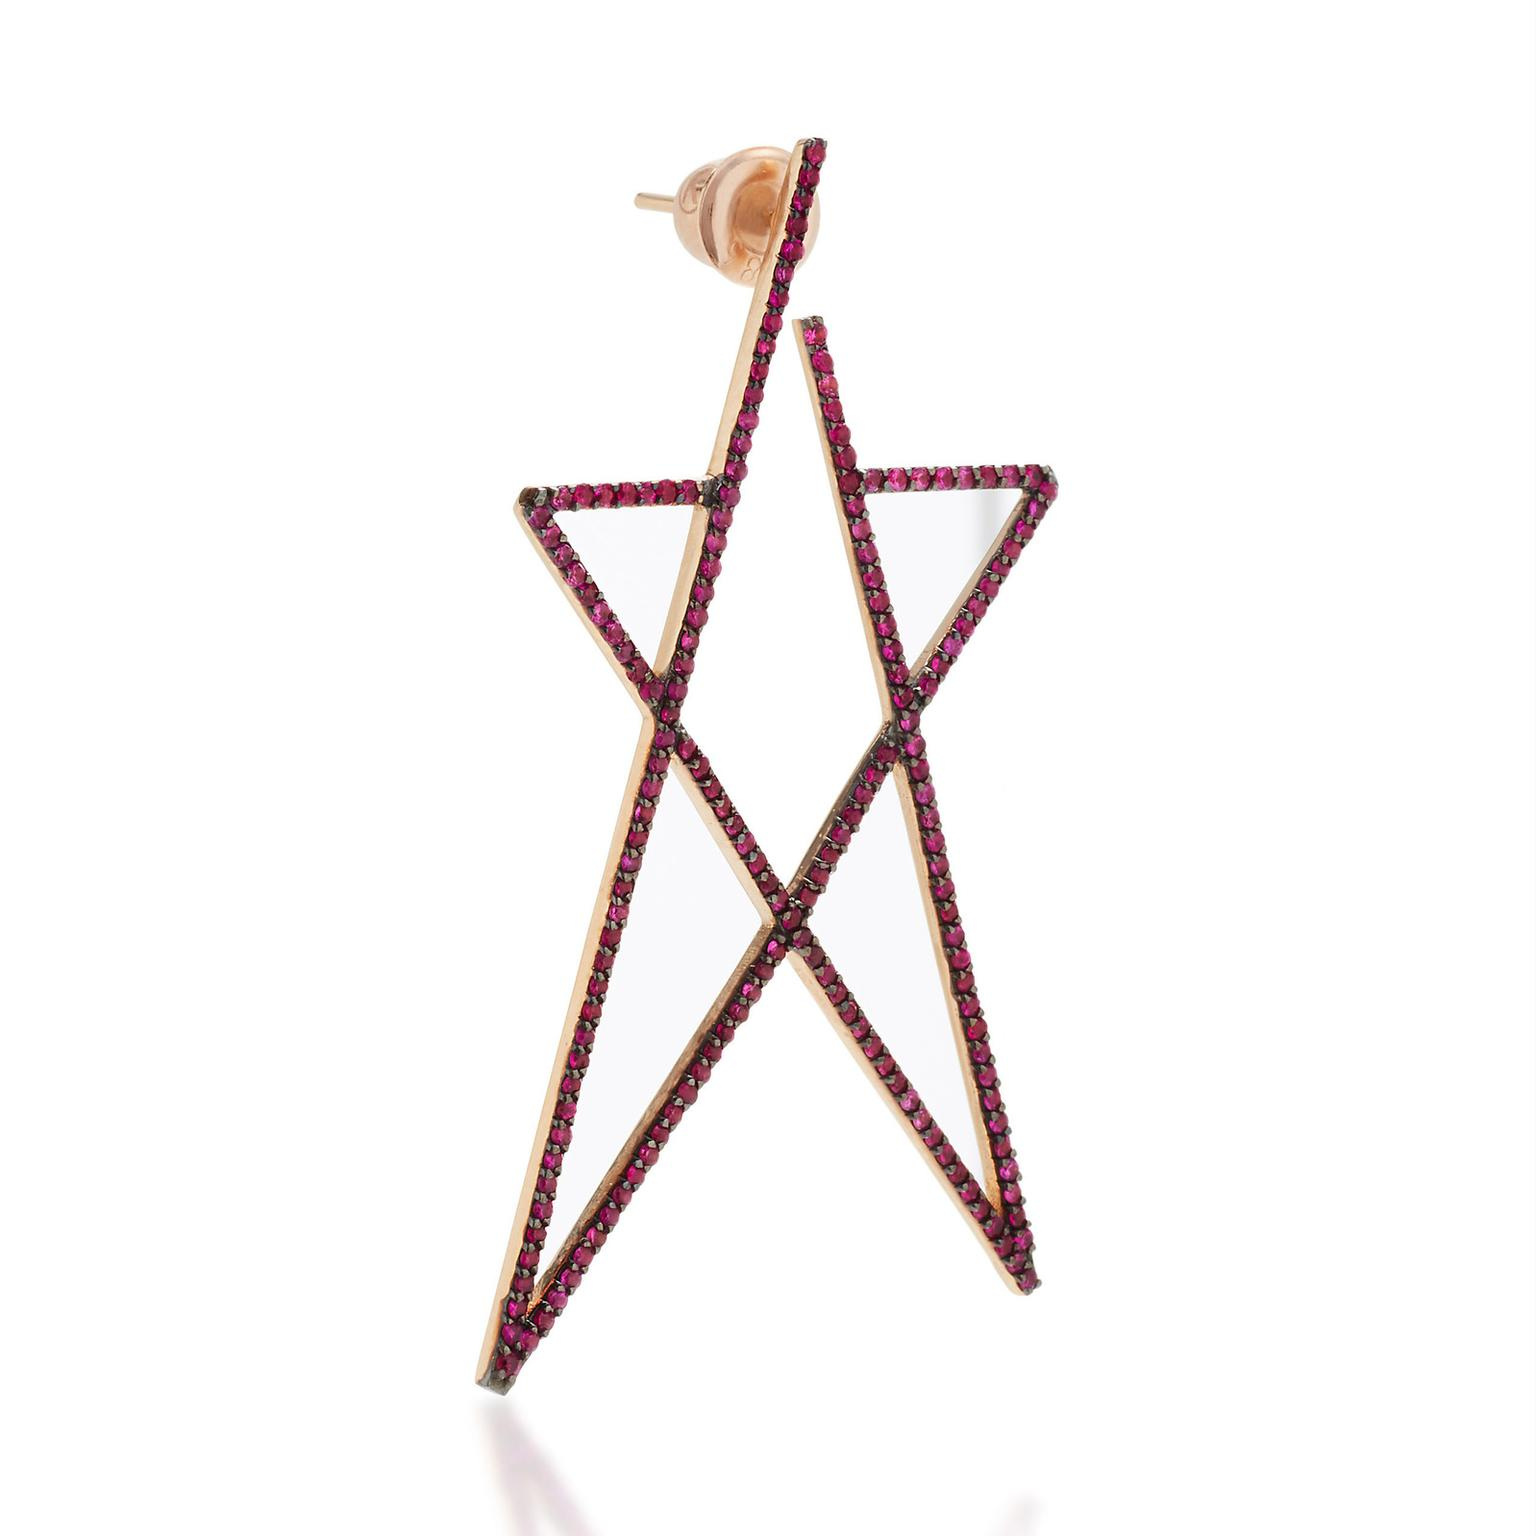 Kismet by Milka Struck Star ruby earring